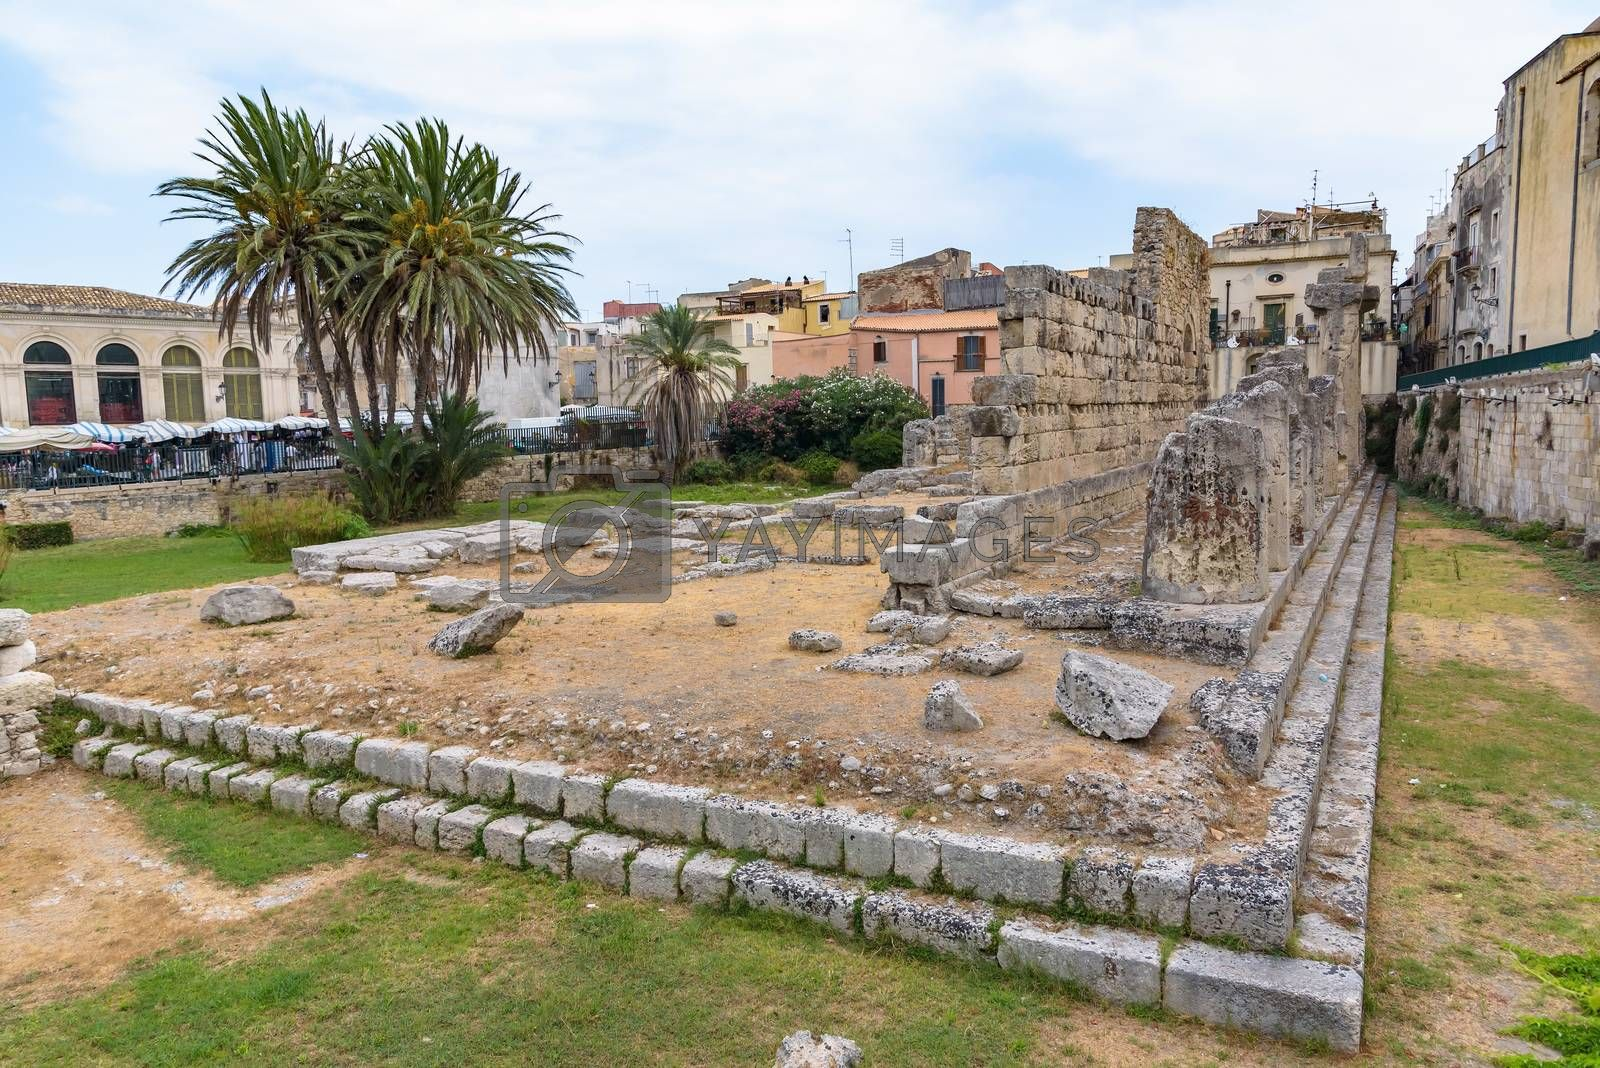 Ruins of the Temple of Apollo on Ortygia Island in Syracuse, Sicily, Italy